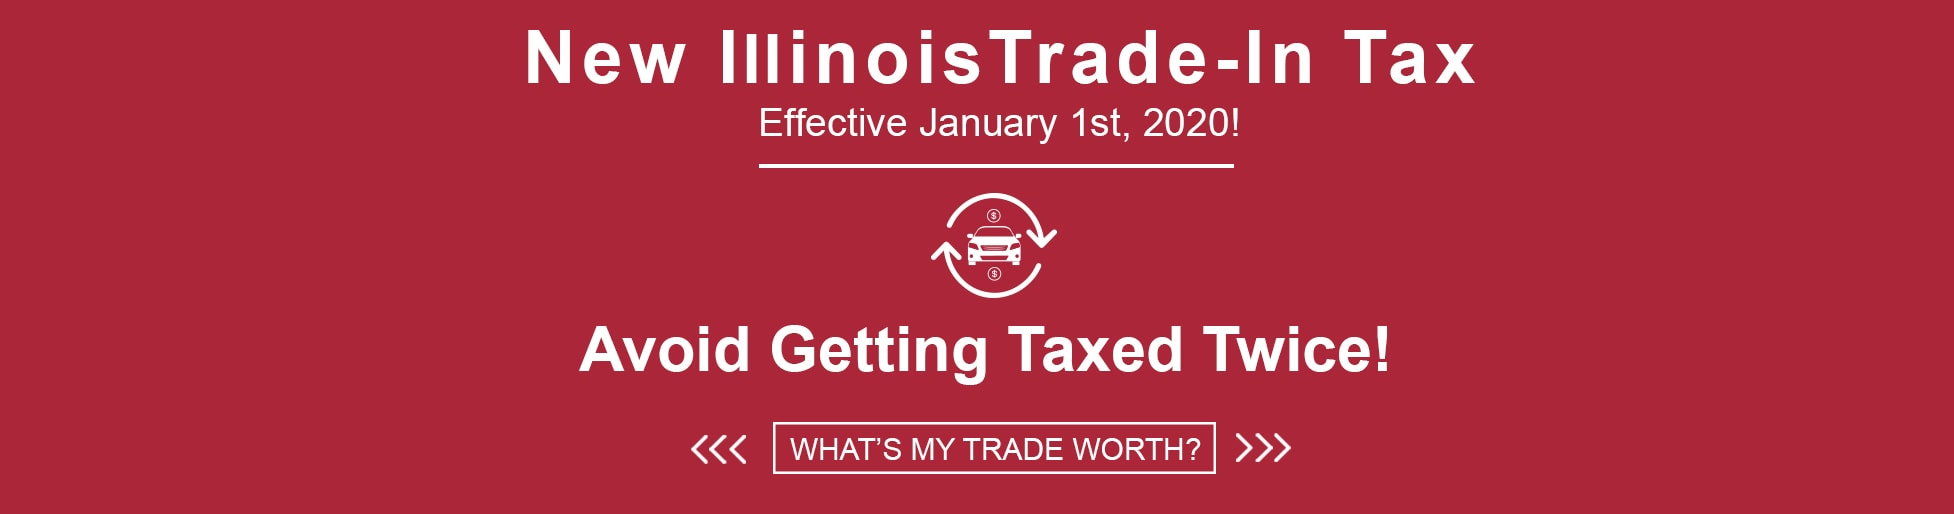 Trade-In Your Old Car Before the New Trade-In Tax